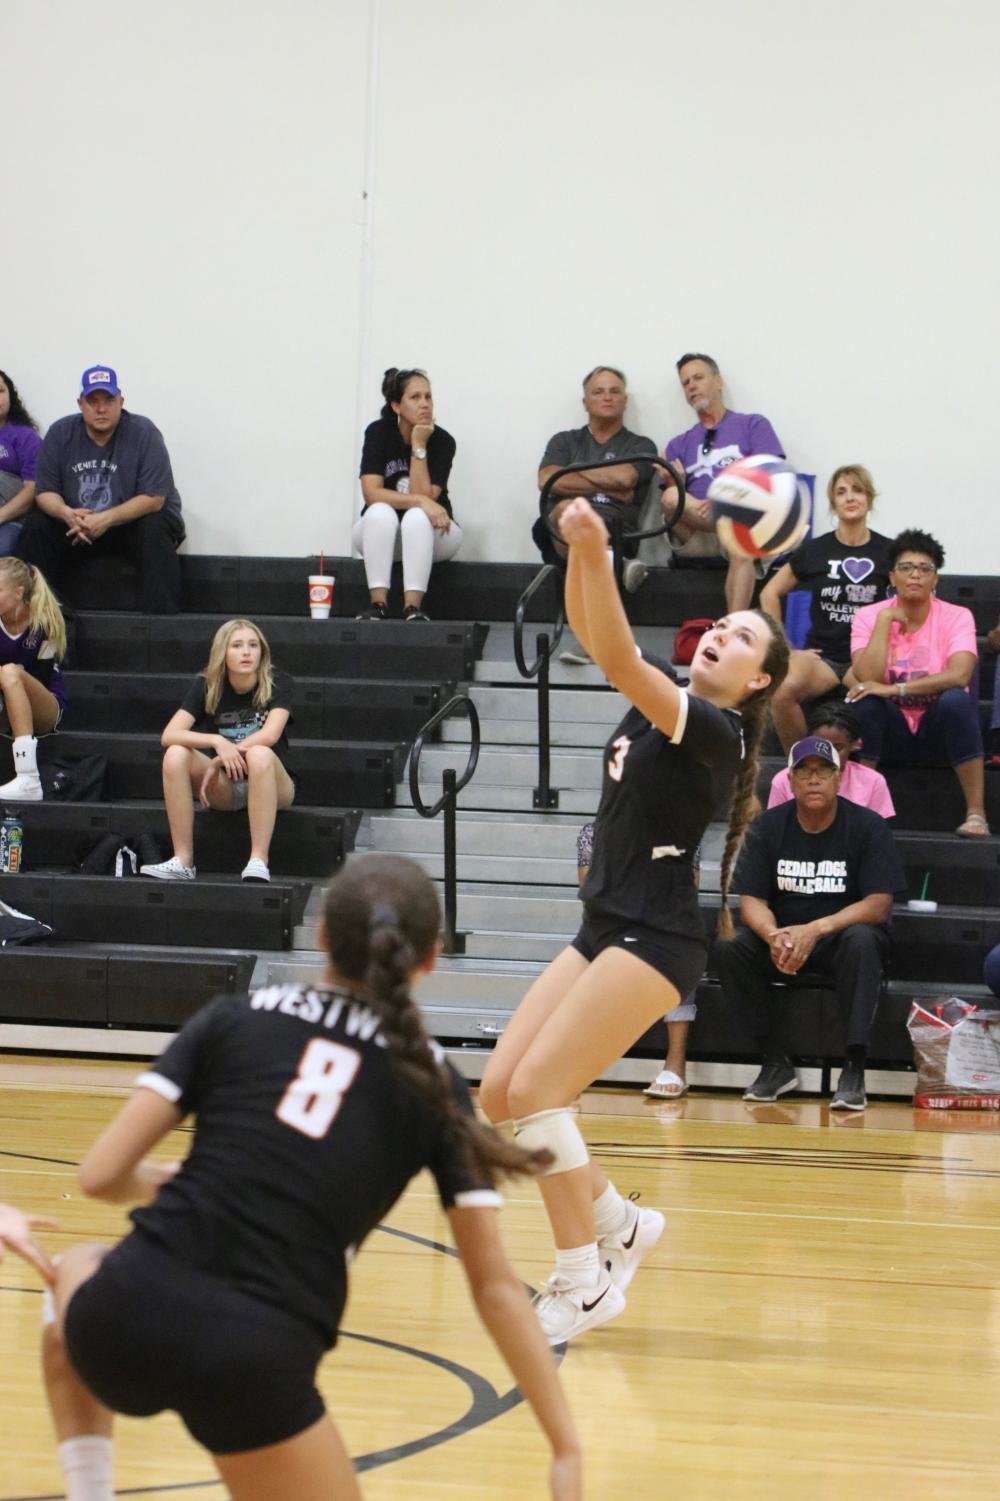 Abbey+Jennings+%E2%80%9822+bumps+the+backwards+to+Cedar+Ridge%2C+scoring+a+point.+This+is+Jennings%E2%80%99+second+year+playing+volleyball+as+a+Lady+Warrior.